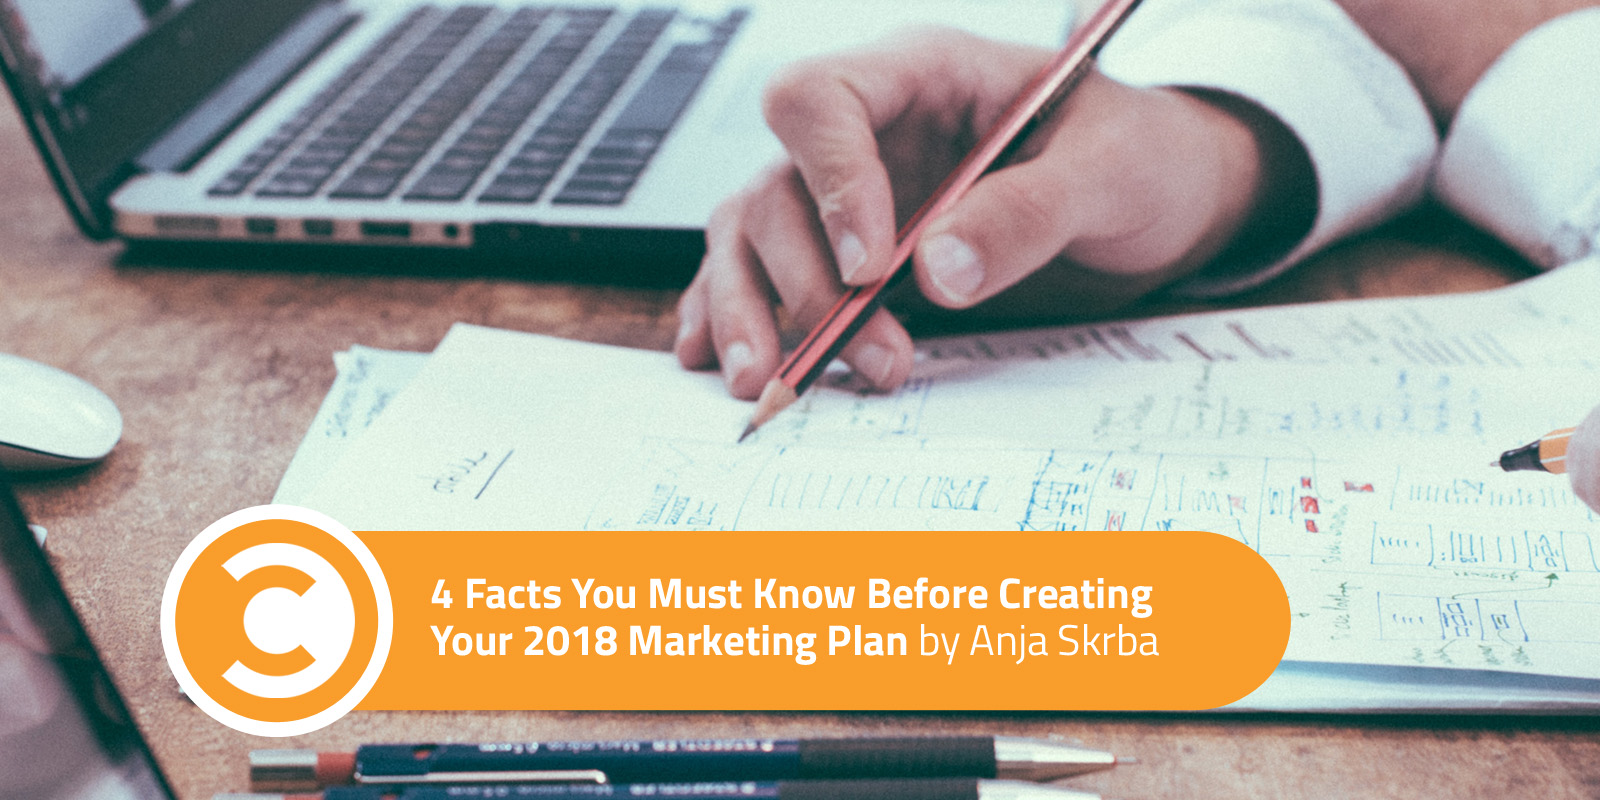 4 Facts You Must Know Before Creating Your 2018 Marketing Plan